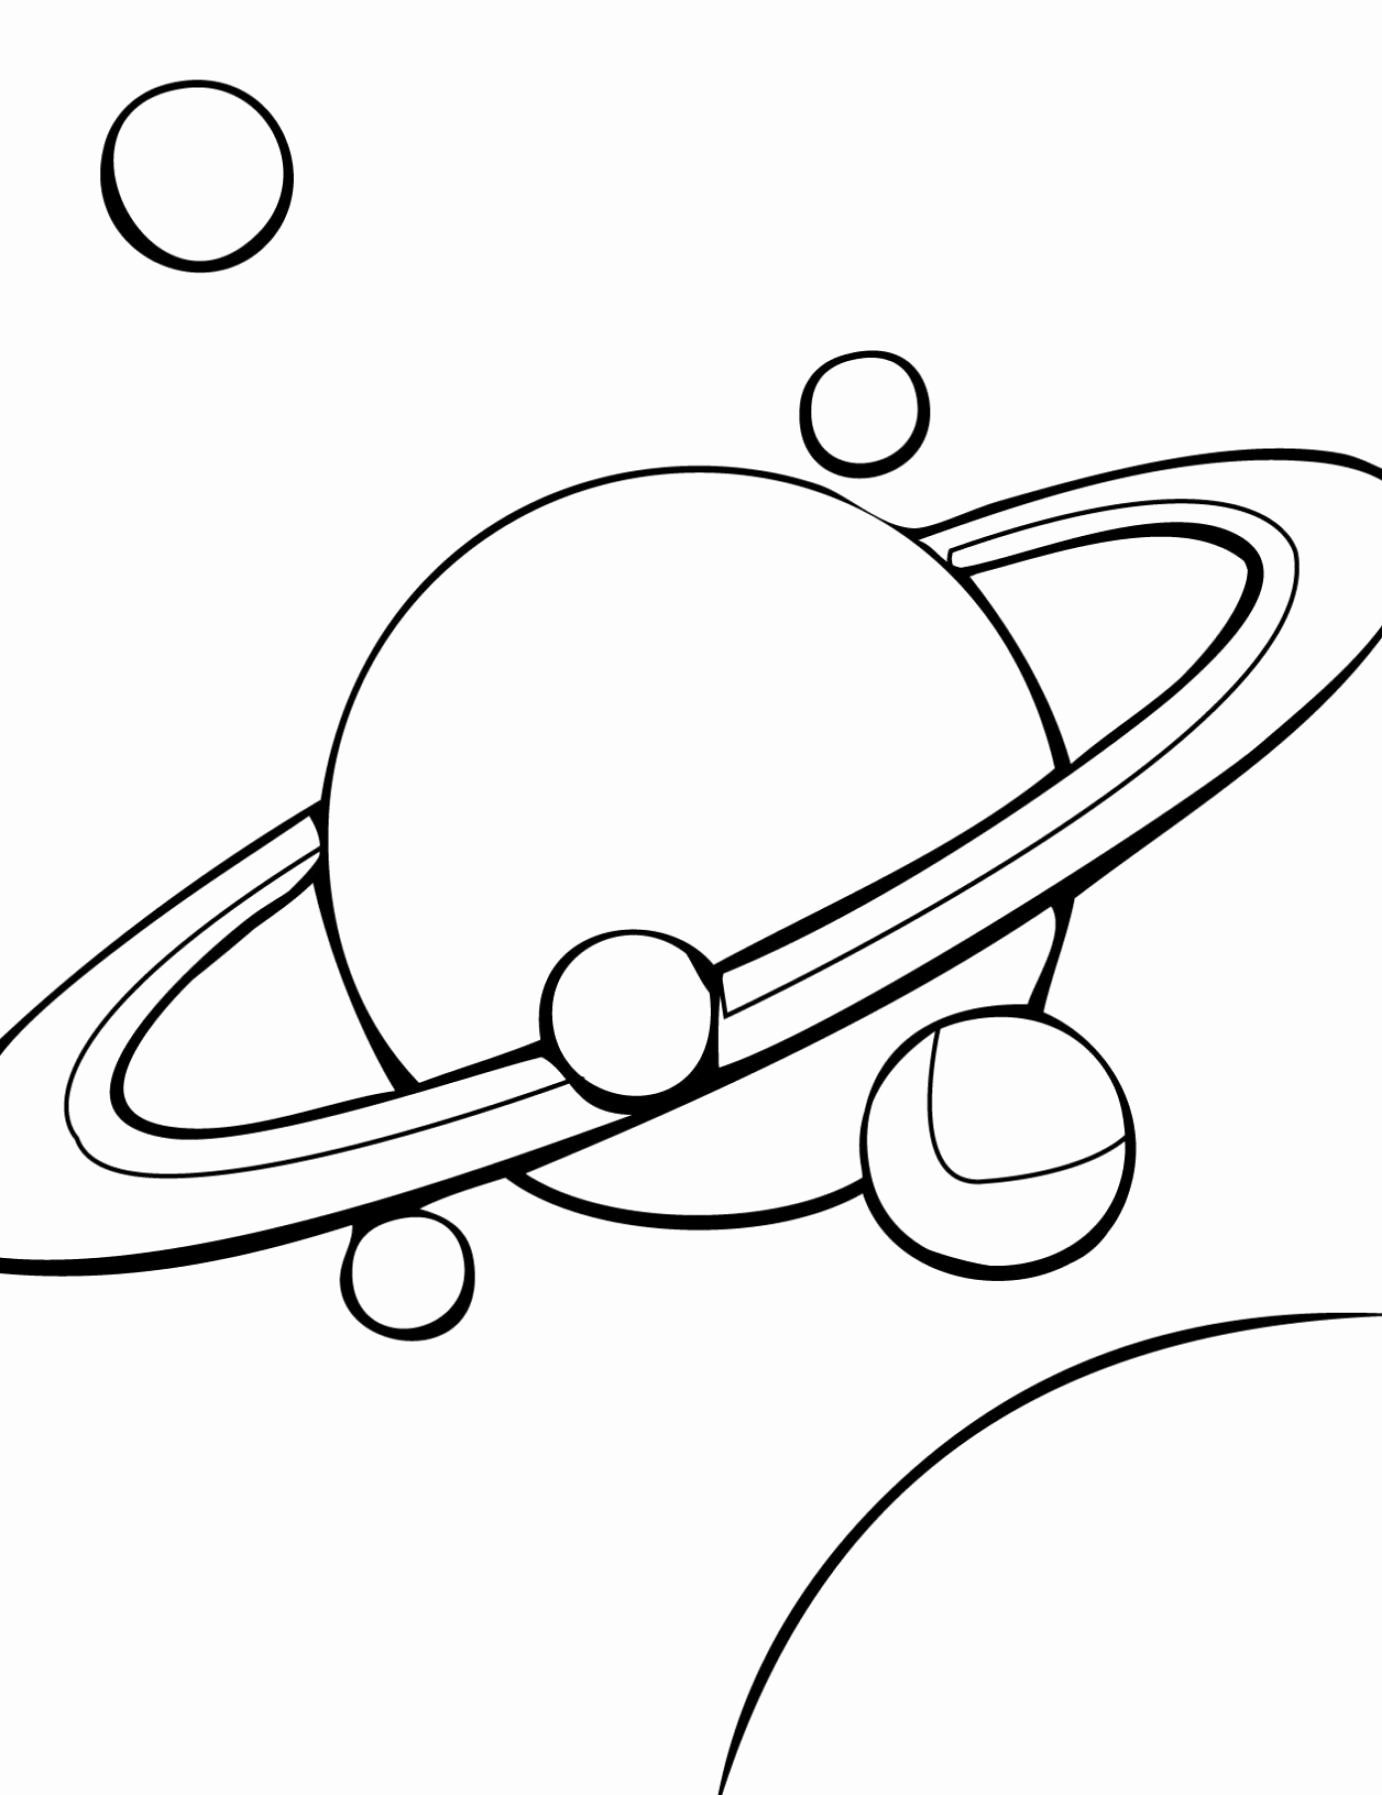 Solar System Planets Coloring Inspirational Free Printable Solar System Coloring Pages For Kids Ruimtevaart Onderwijs Ruimte